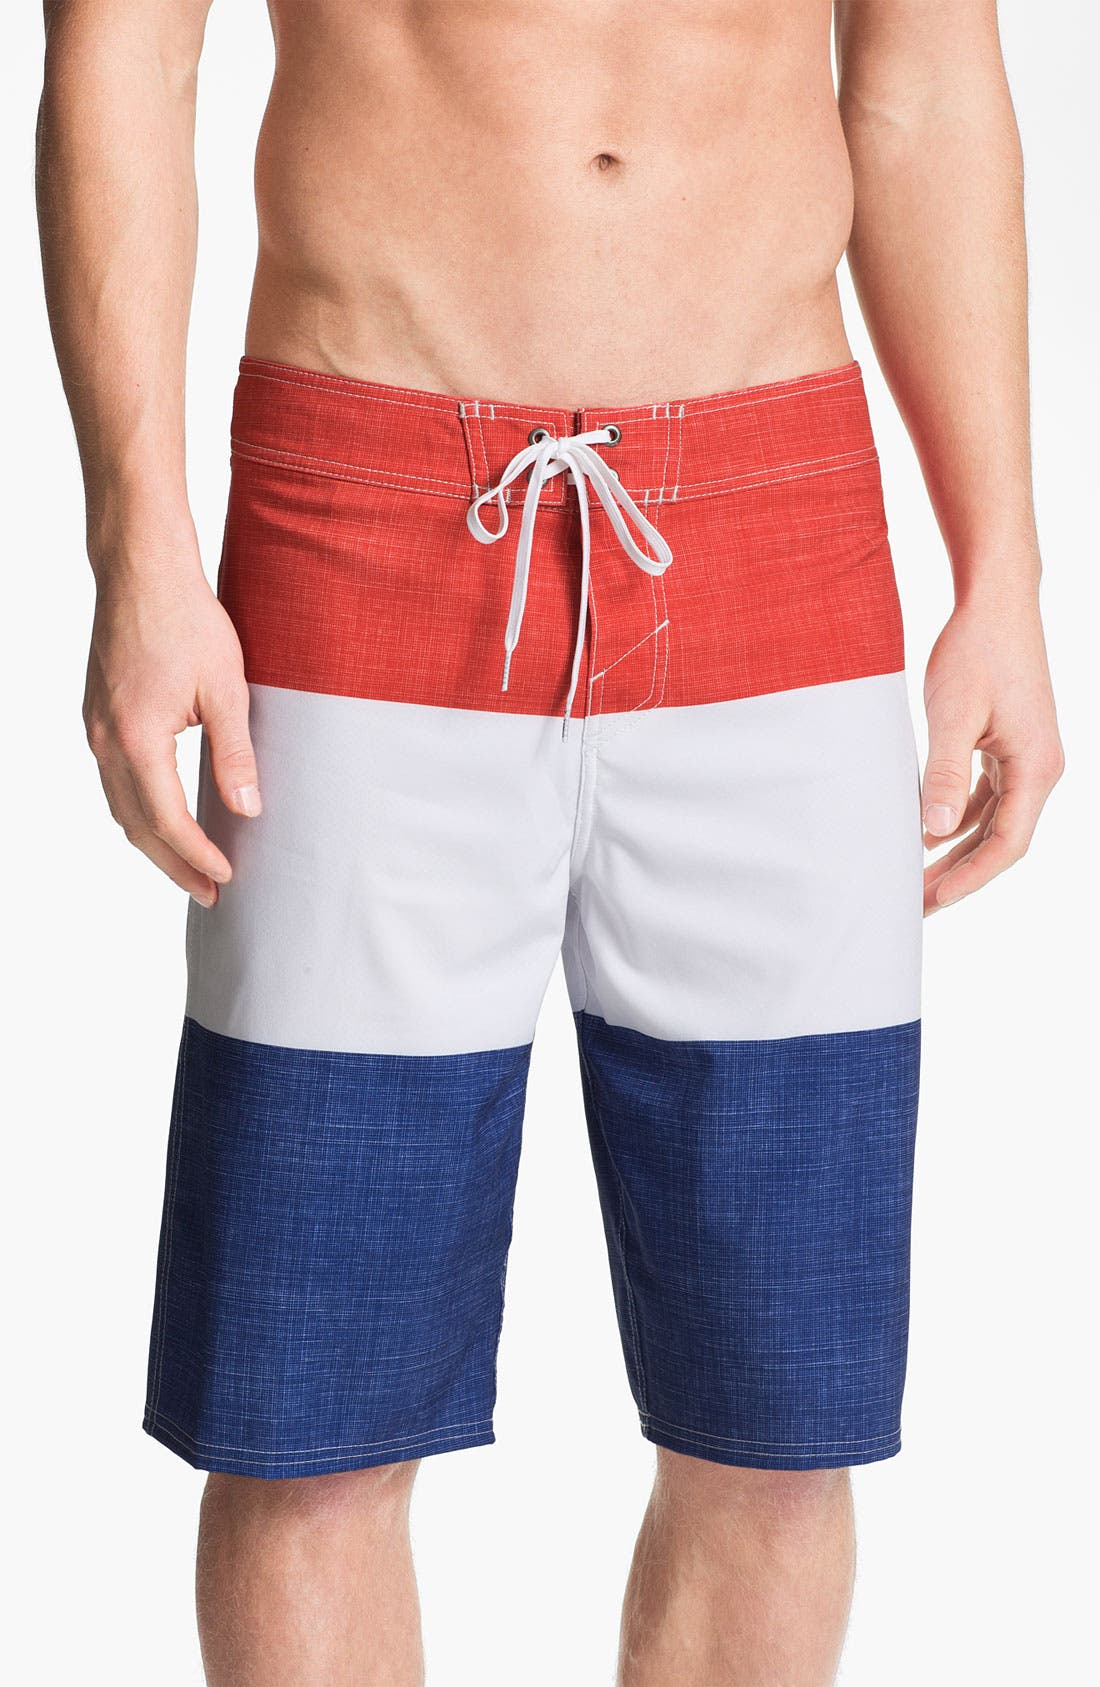 Alternate Image 1 Selected - O'Neill 'PBR Stripe' Board Shorts